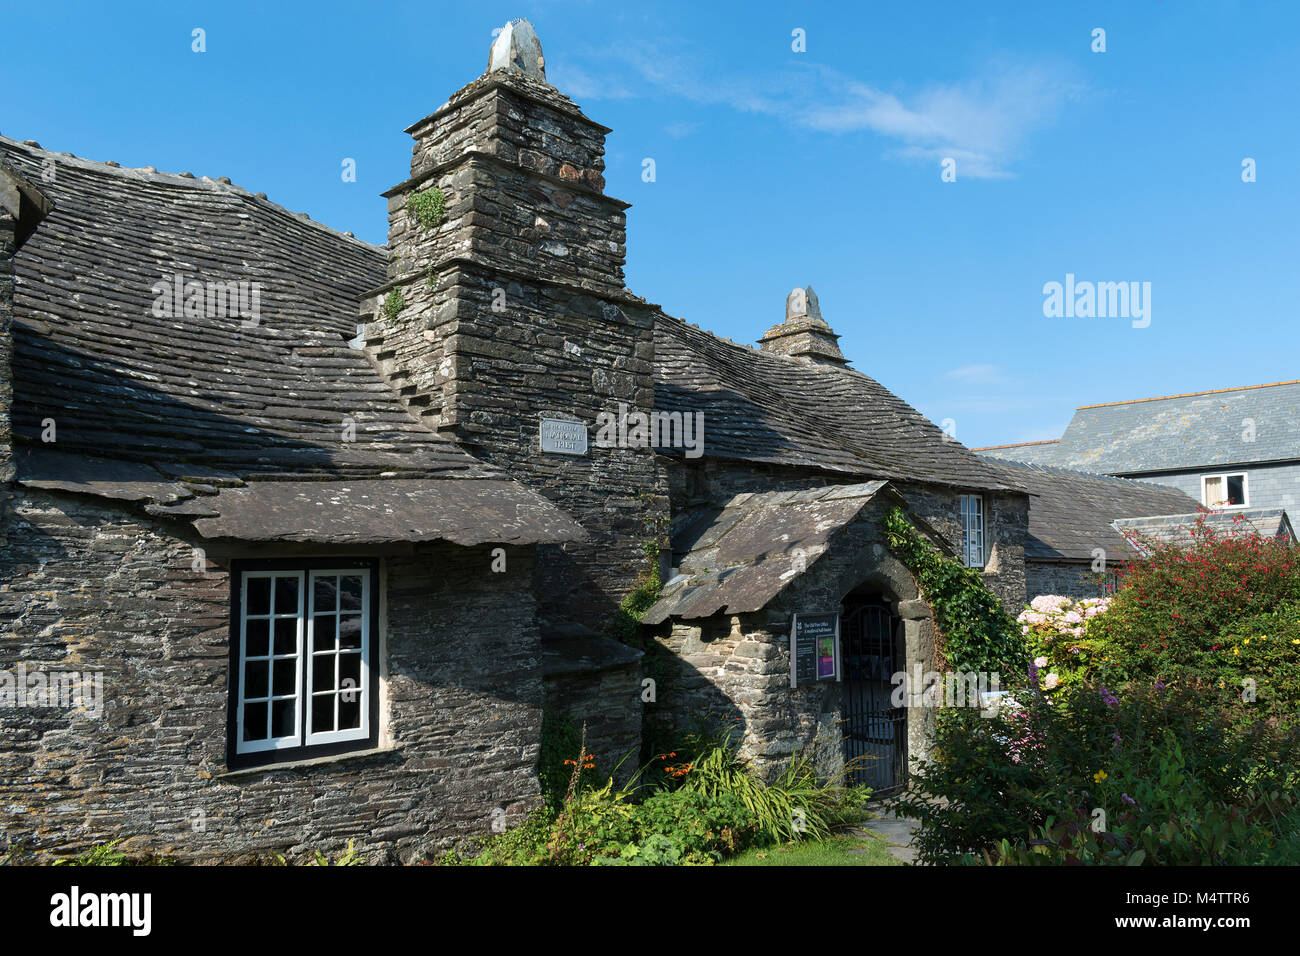 a medieval hall house now the old post office at tintagel, cornwall, england, britain, uk. this image was taken - Stock Image